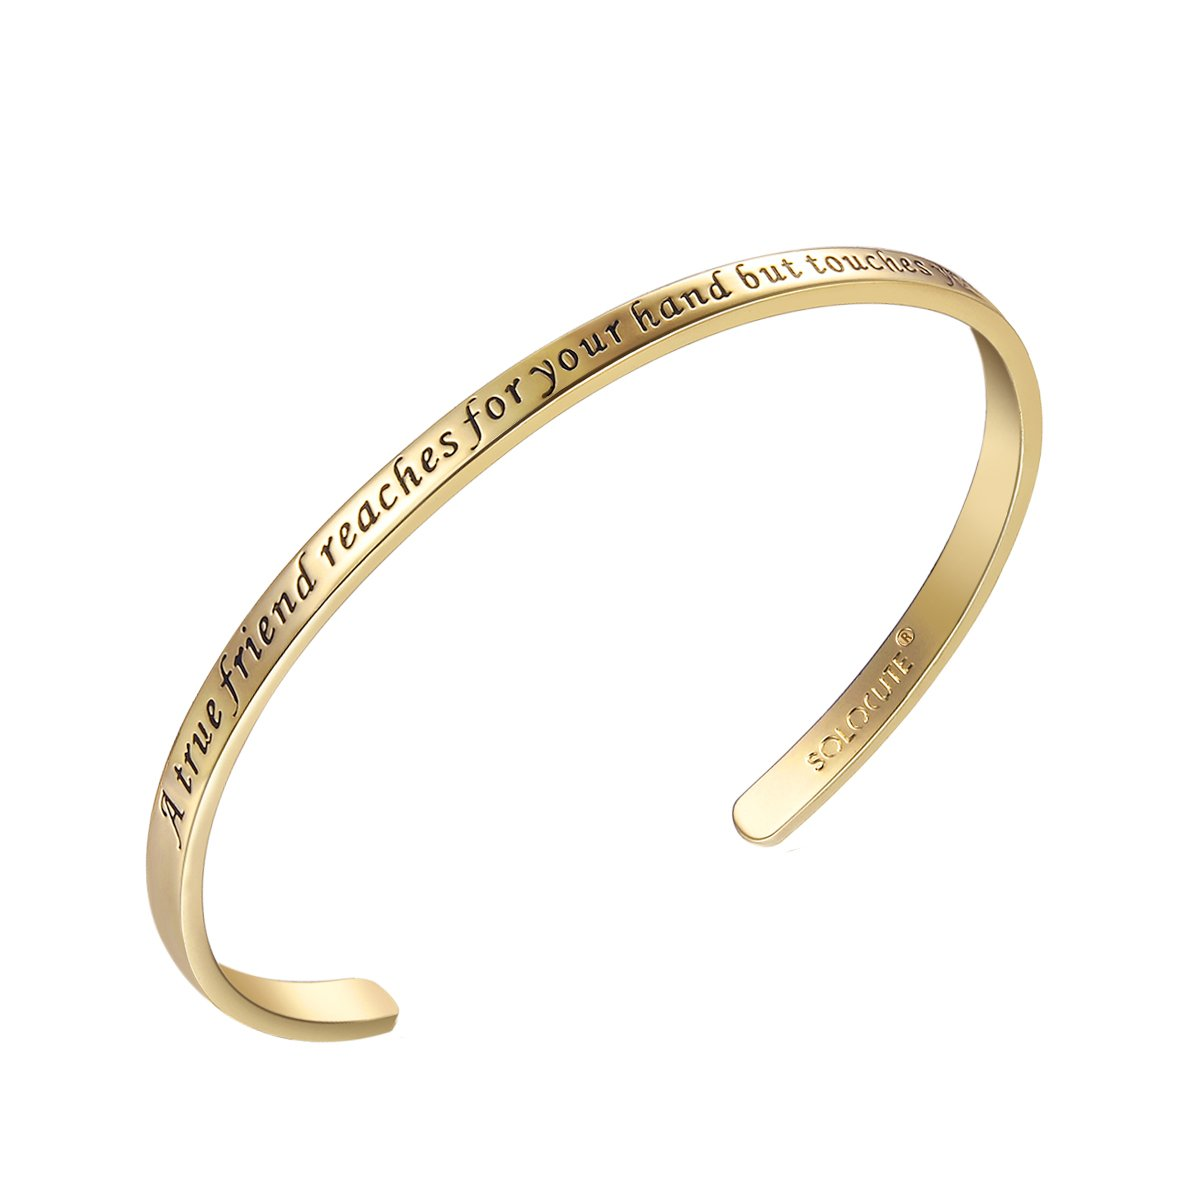 SOLOCUTE Gold Cuff Bangle Bracelet Engraved ''A True Friend Reaches For Your Hand But Touches Your Heart'' Inspirational Jewelry, Perfect Gift for Christmas Day, Thanksgiving Day and Birthday